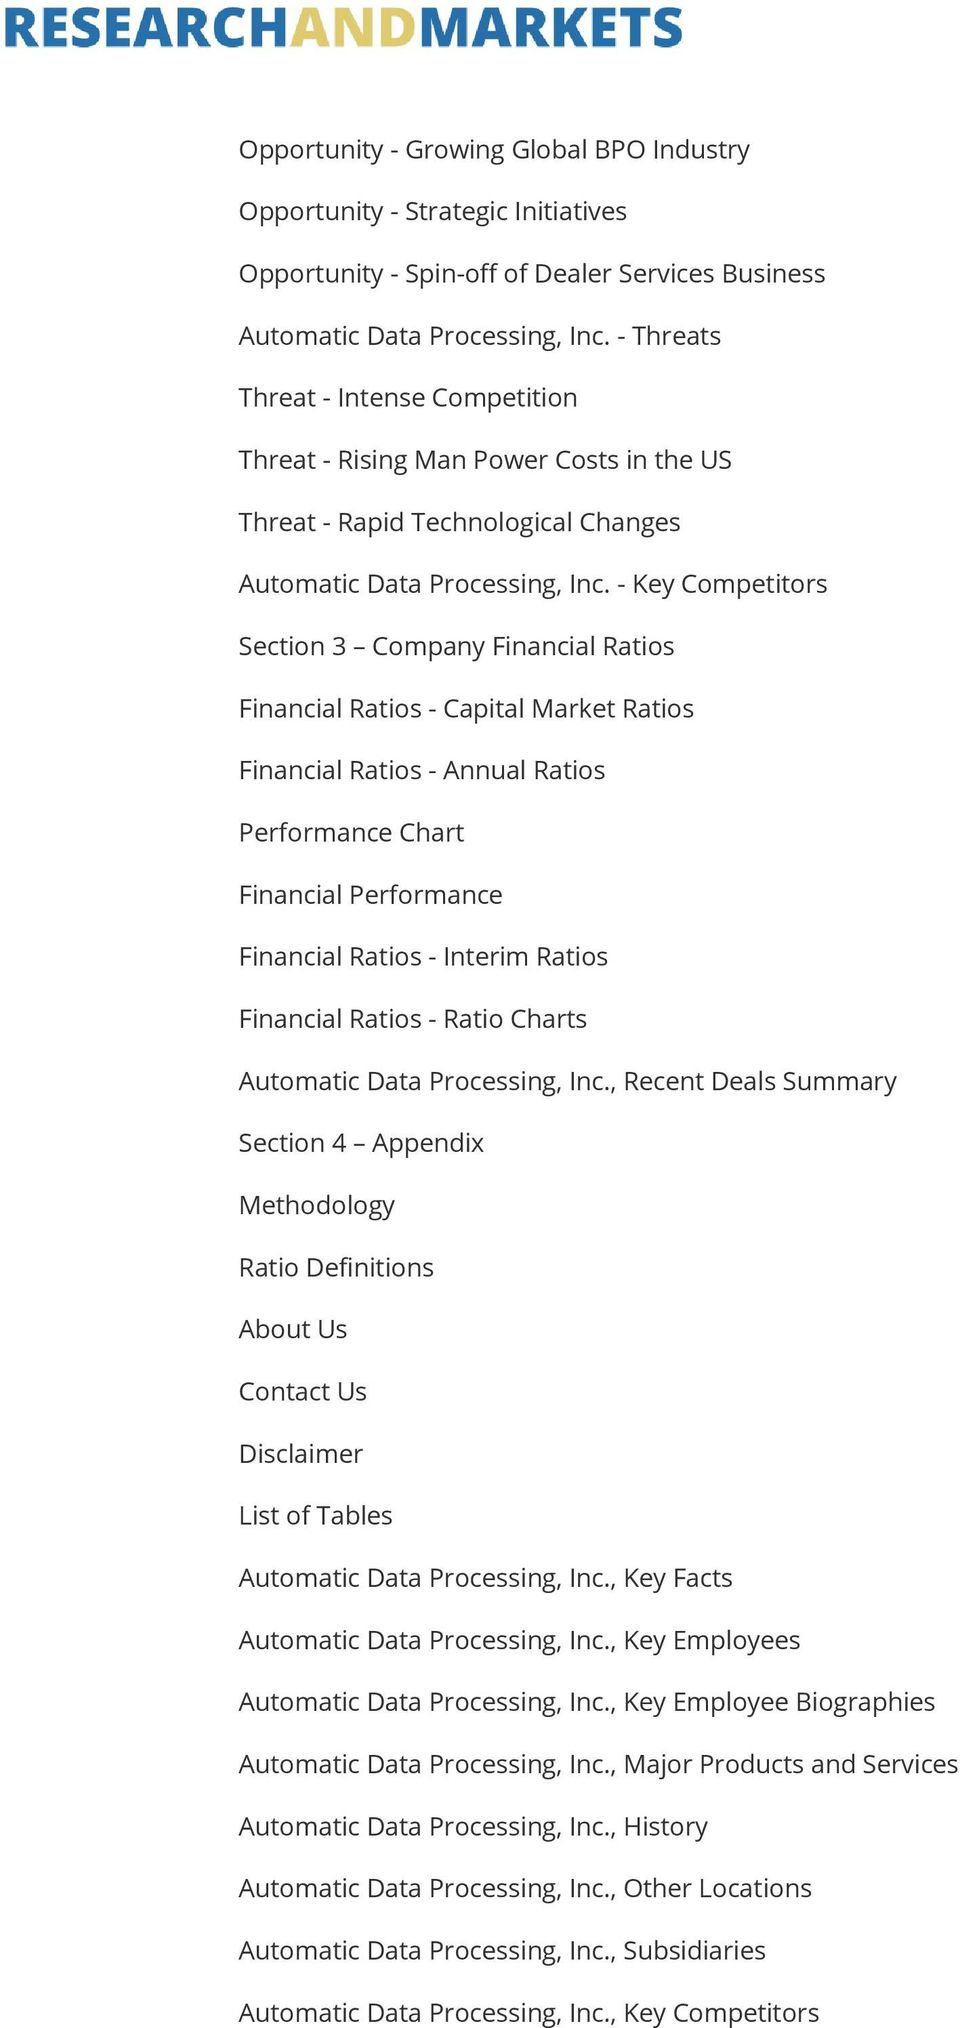 - Key Competitors Section 3 Company Financial Ratios Financial Ratios - Capital Market Ratios Financial Ratios - Annual Ratios Performance Chart Financial Performance Financial Ratios - Interim